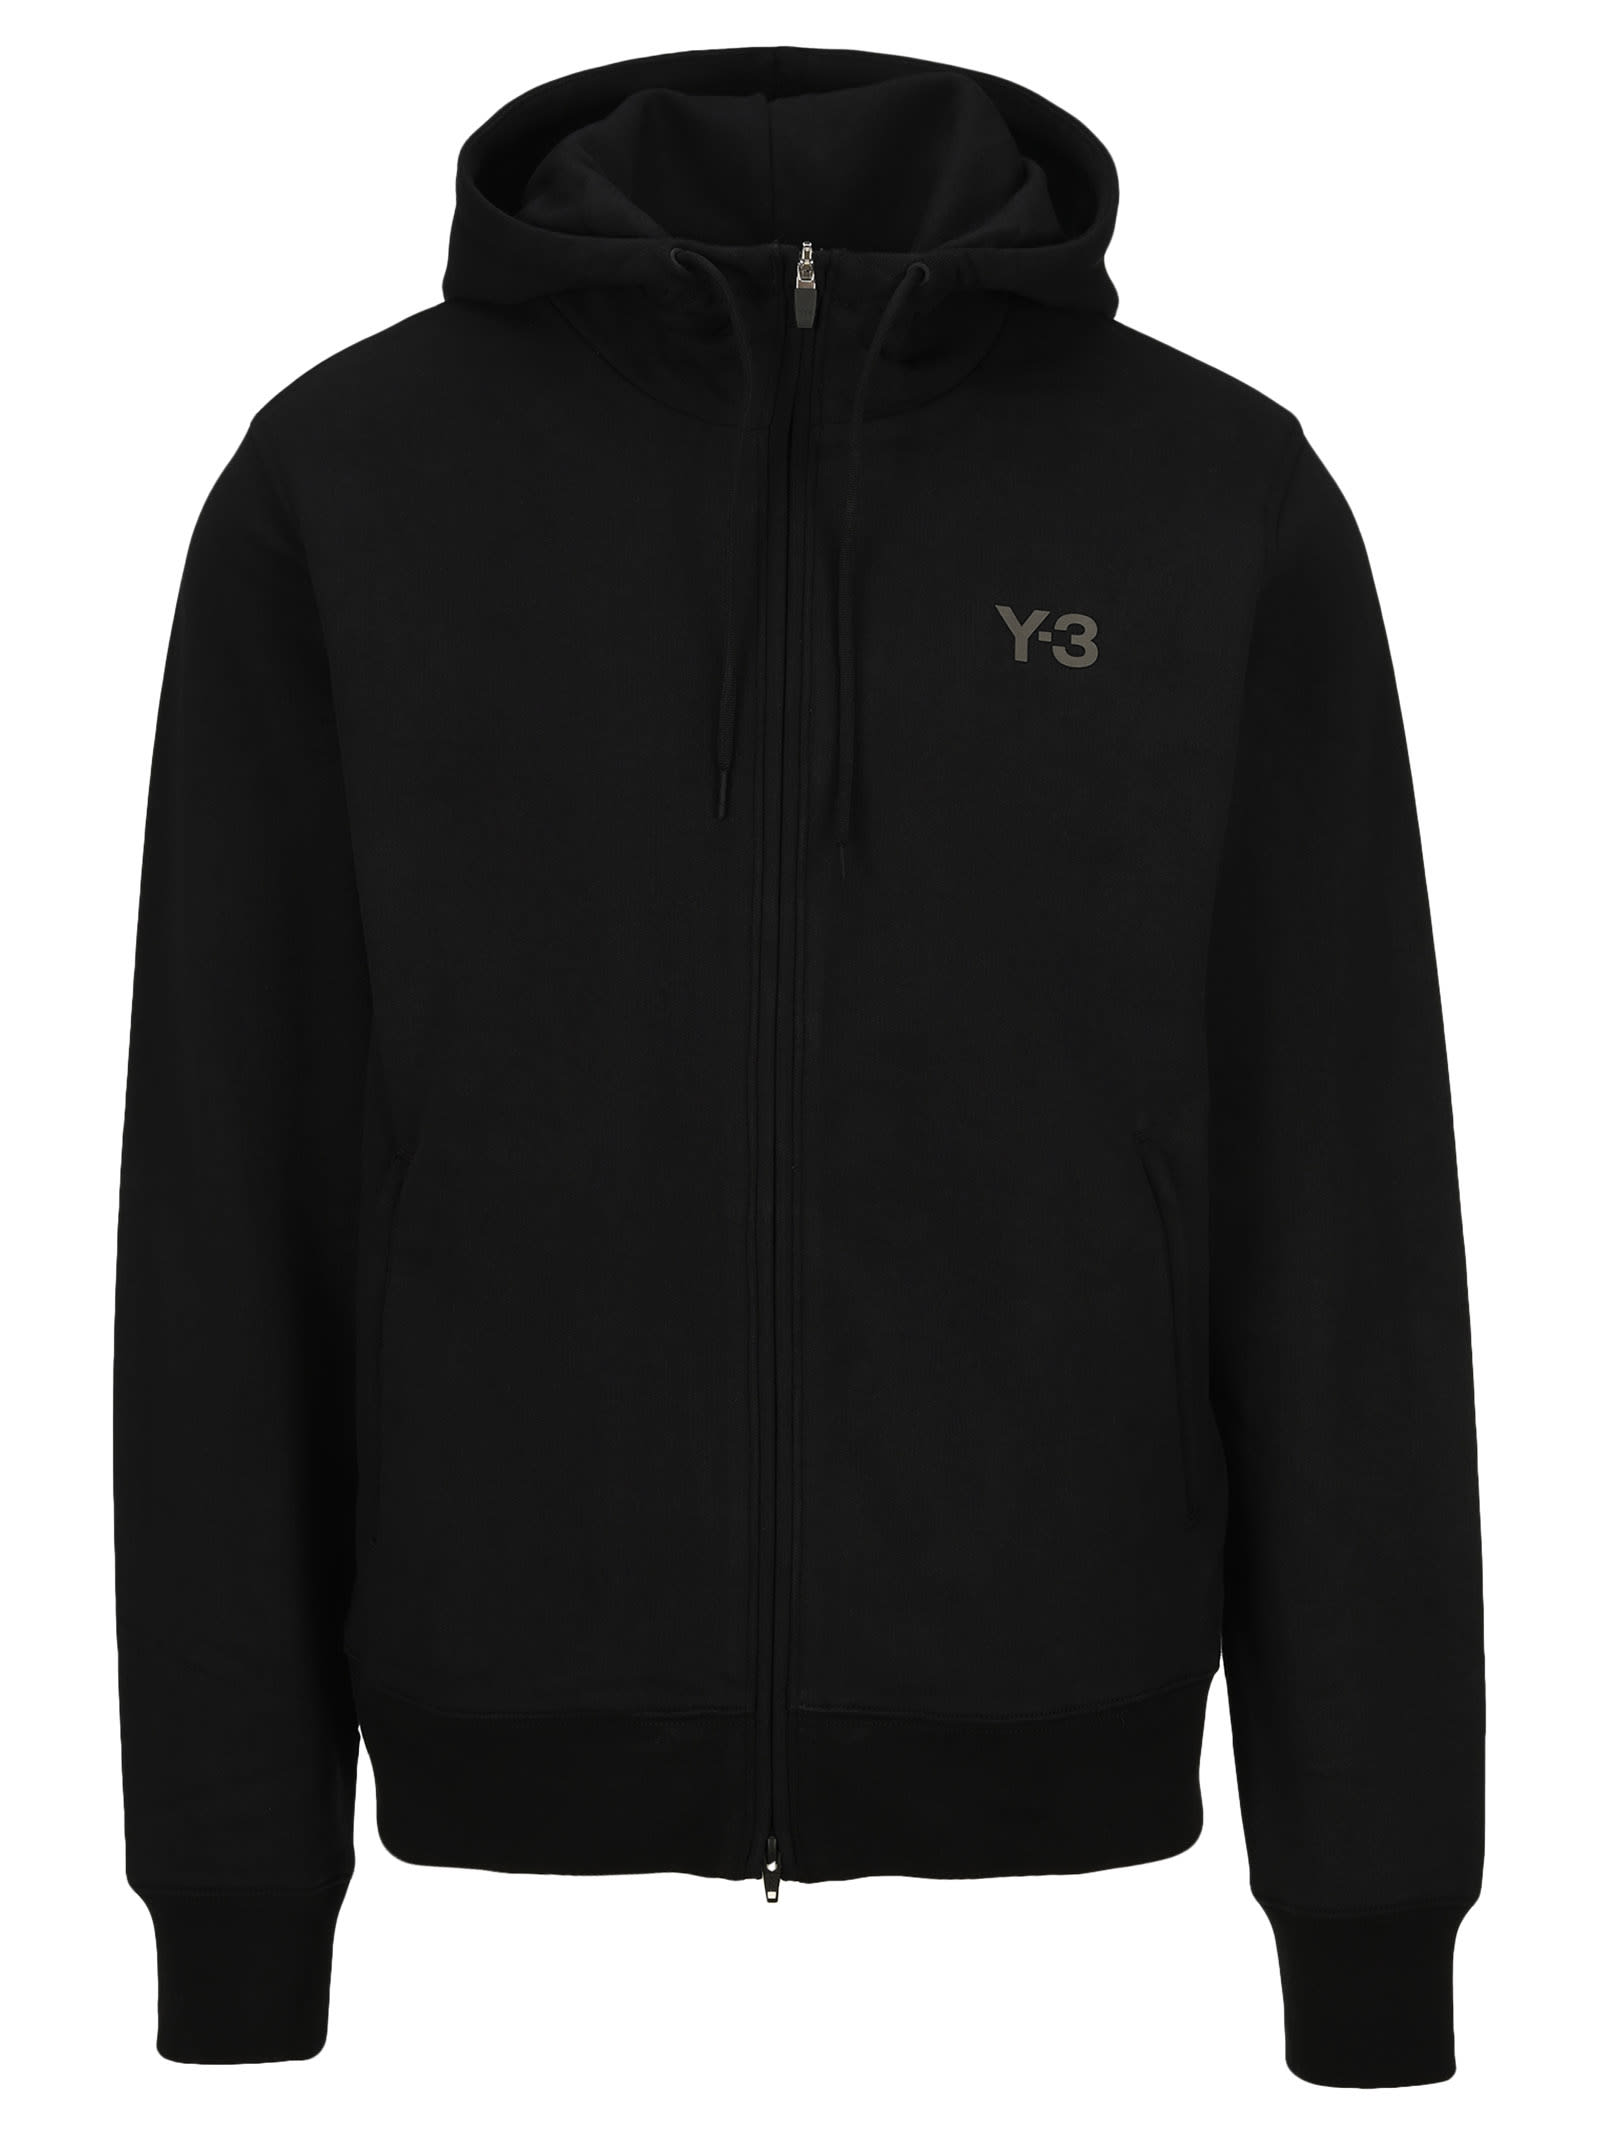 Adidas Y3 Graphic Hoodie